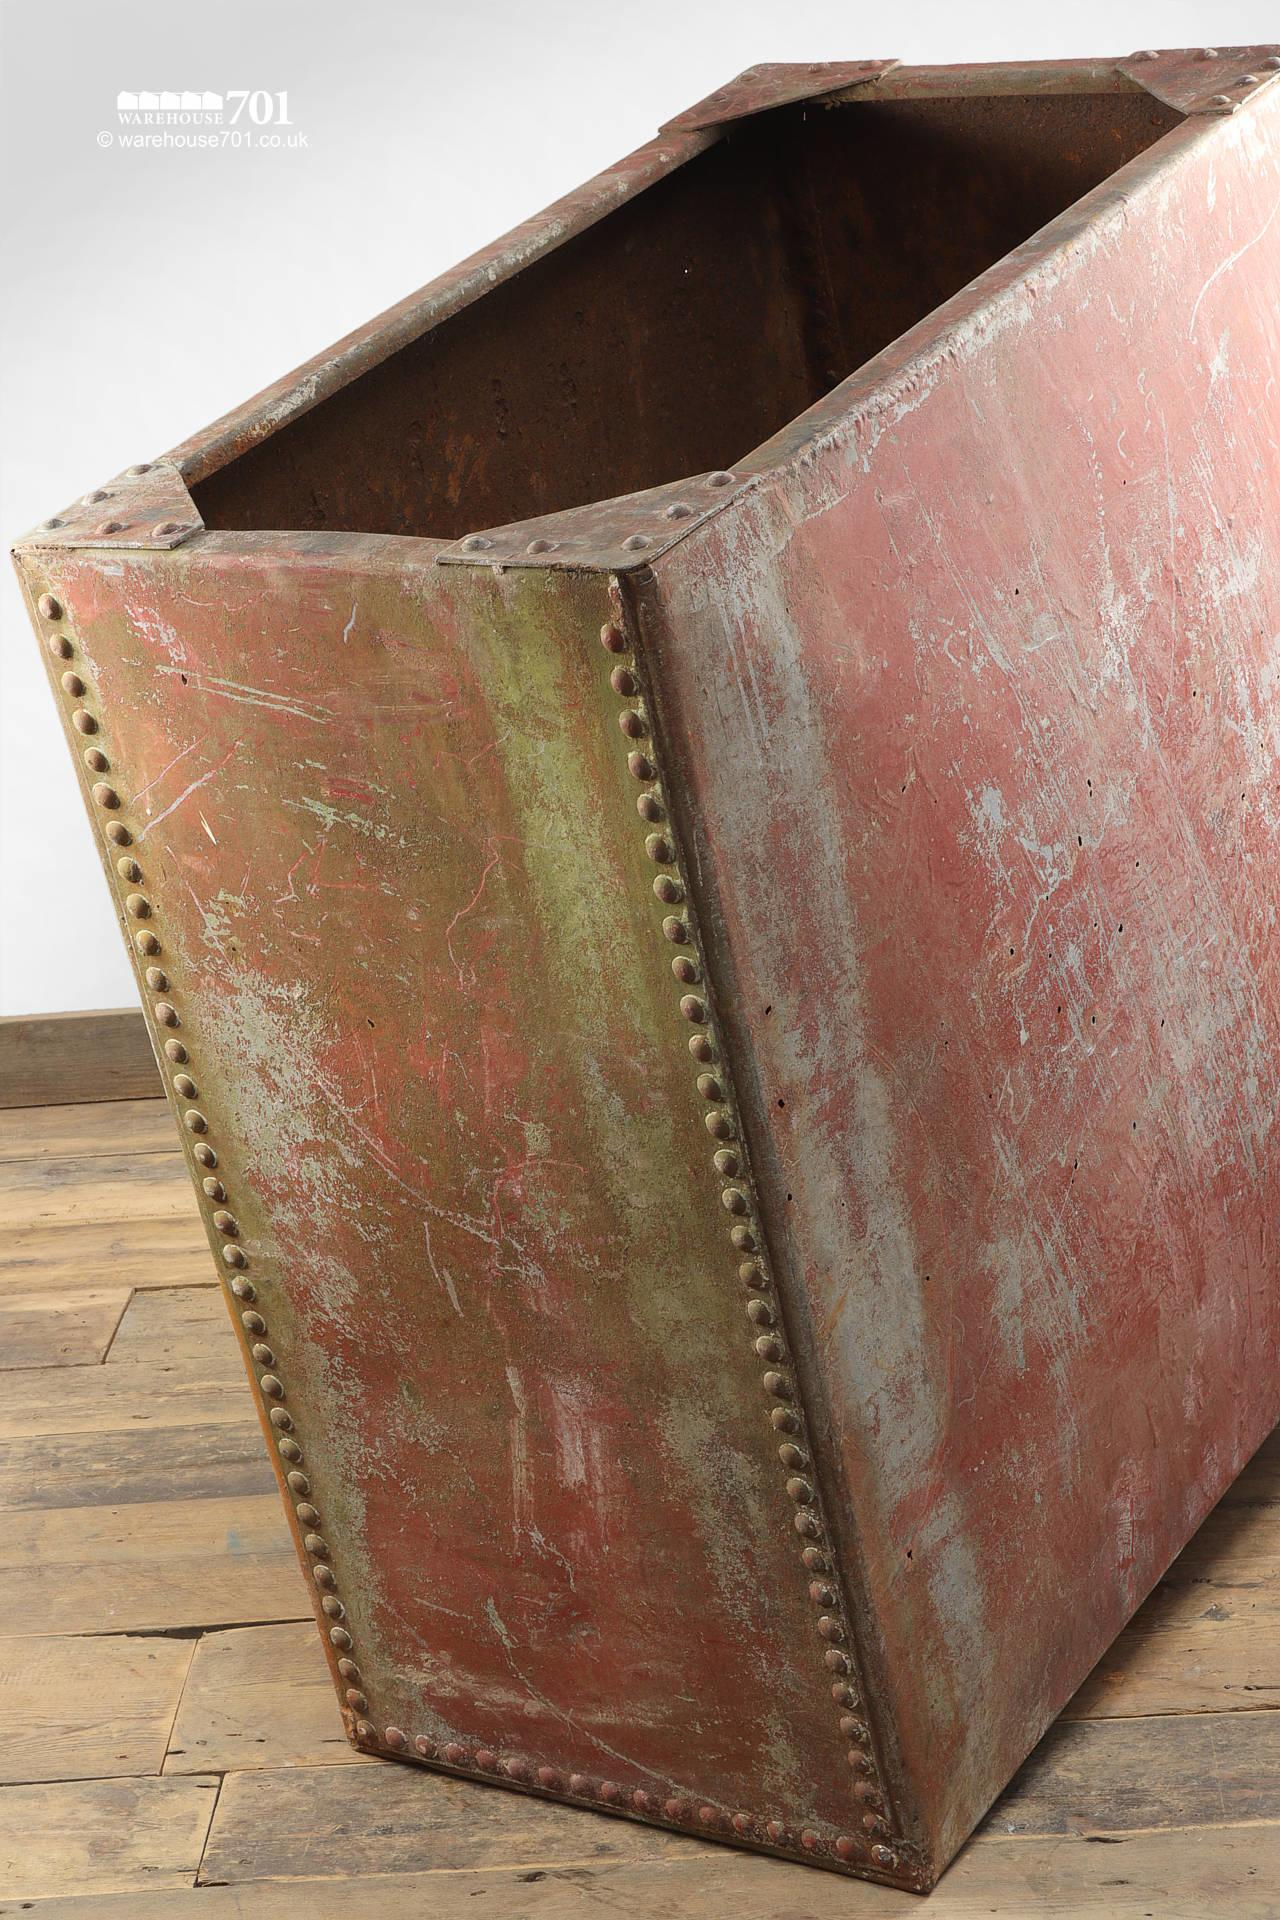 Old Salvaged Galvanised Riveted Red Water Tank #1